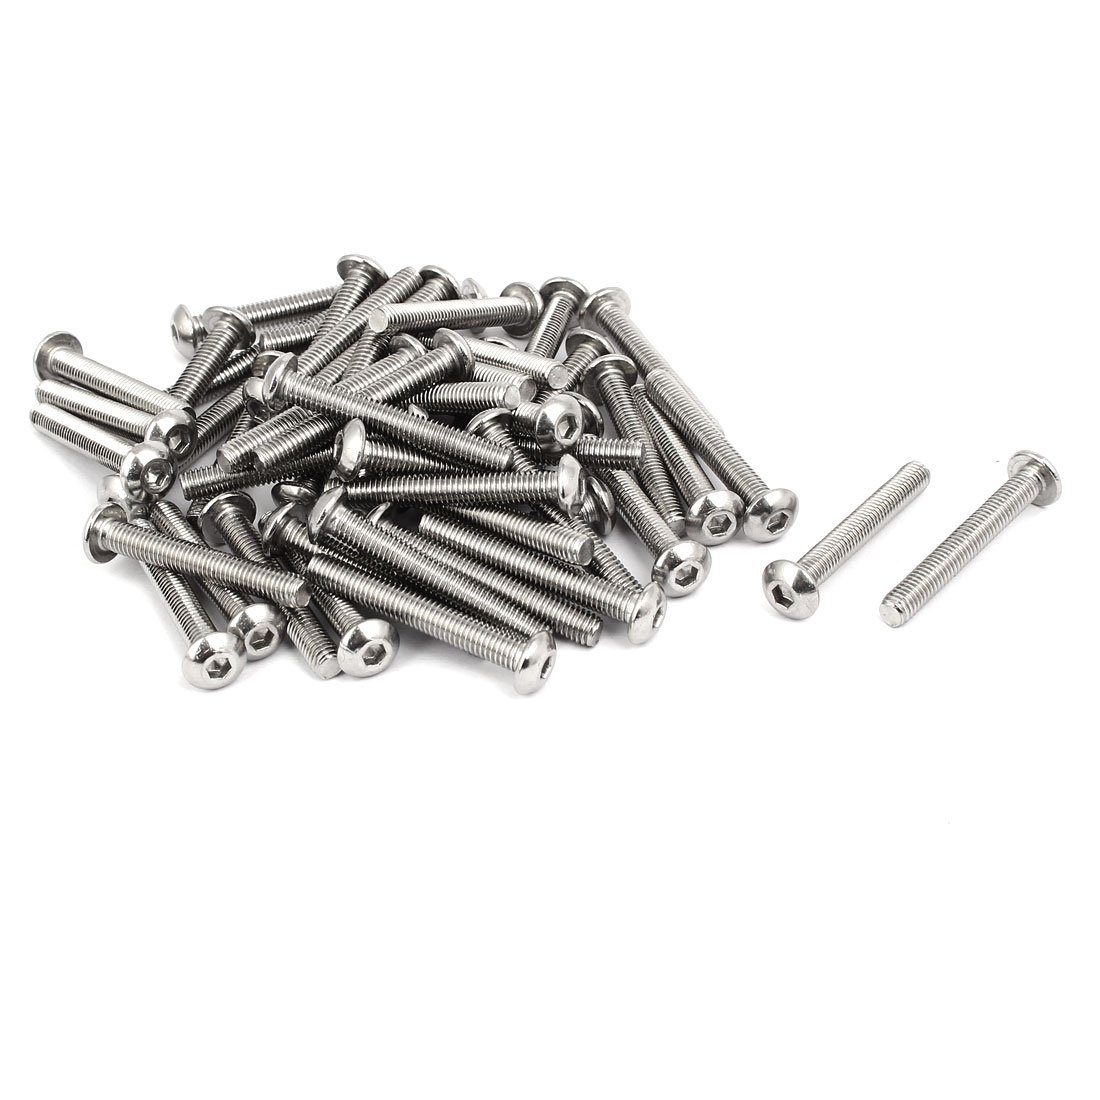 uxcell M5x35mm 304 Stainless Steel Button Head Hex Socket Cap Screws Bolts 50pcs a17022100ux0056